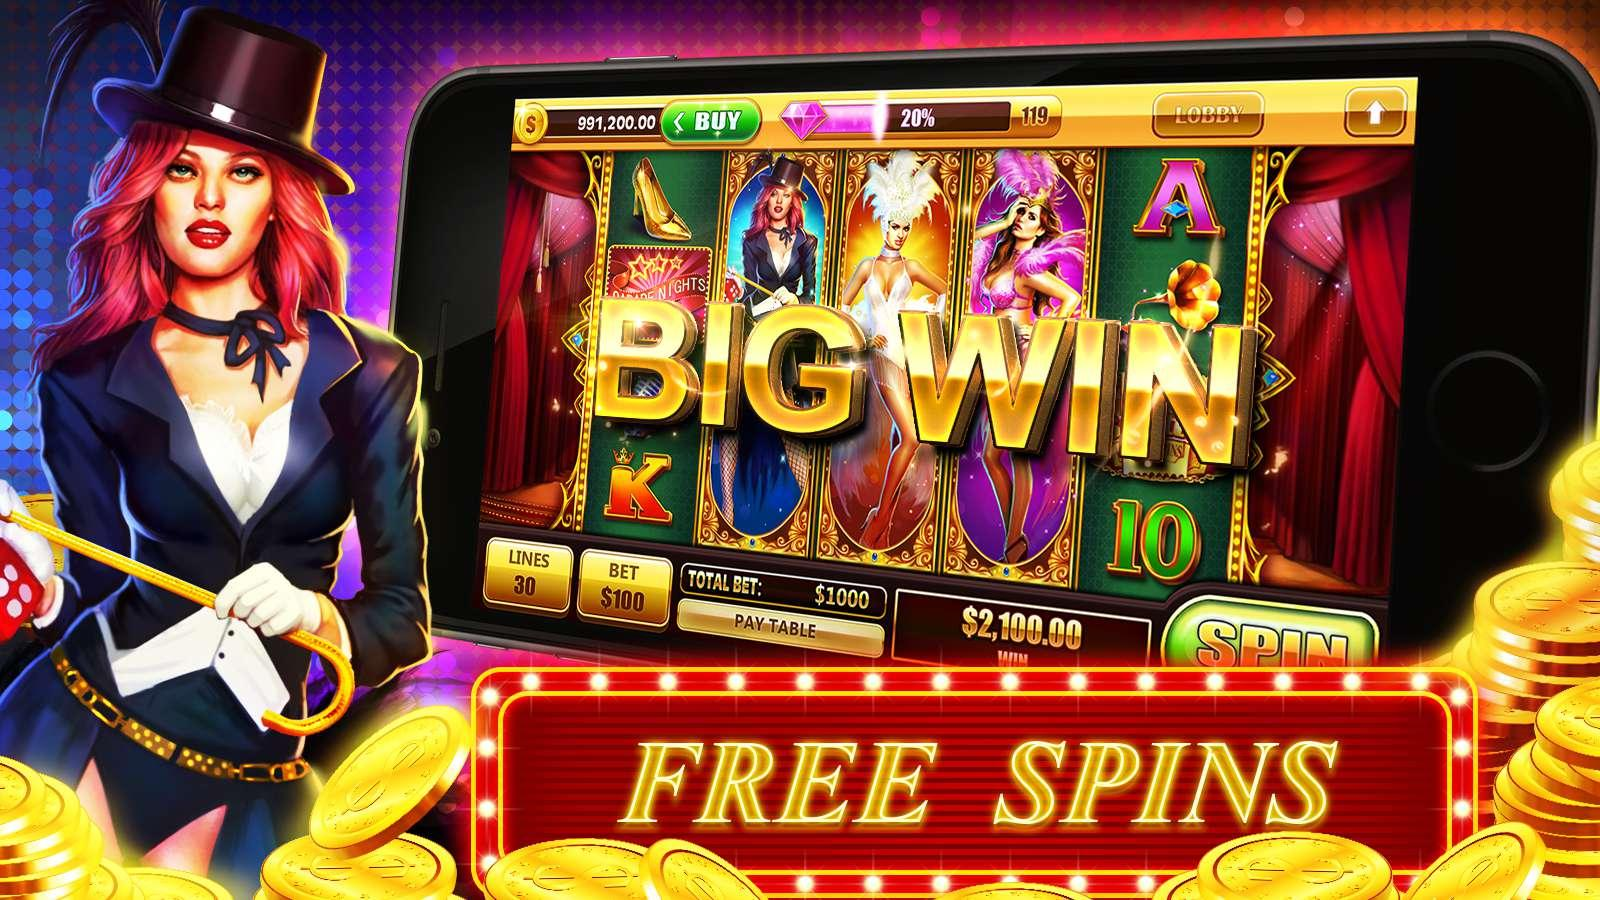 You made right choice to play online casino. The best online casino!